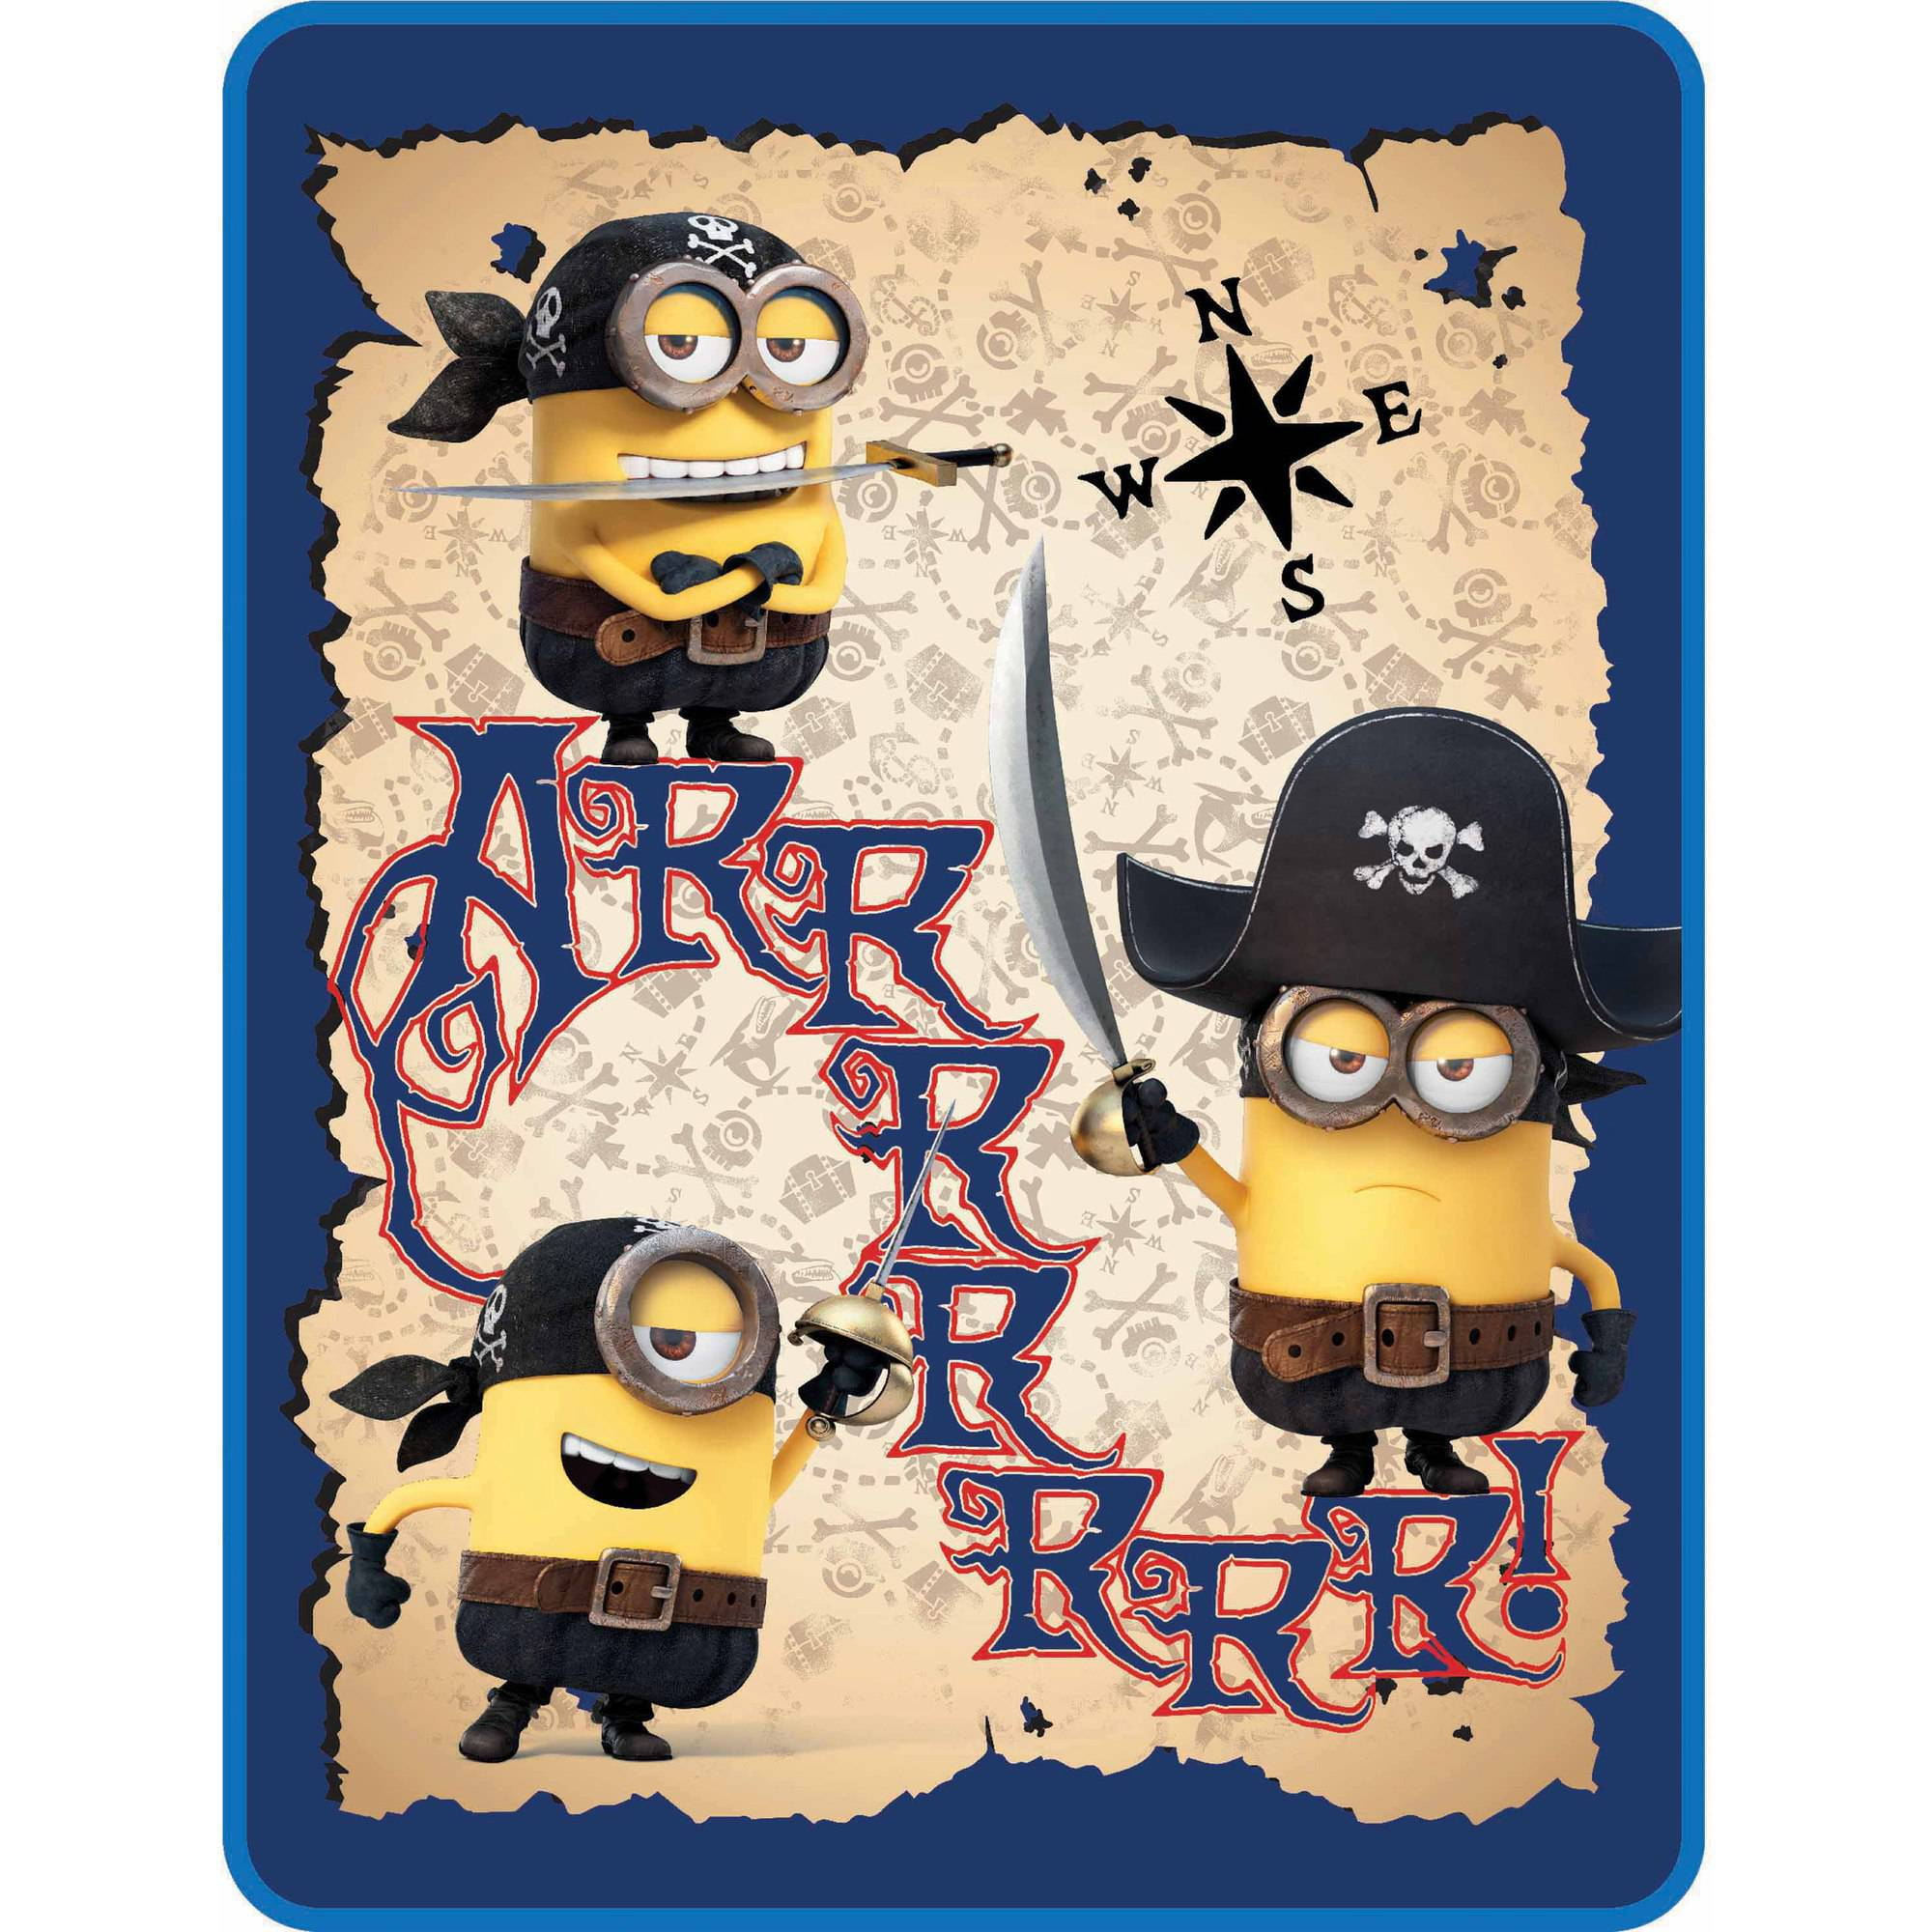 Universal's Despicable Me Minions Pirate Minions Sherpa Throw